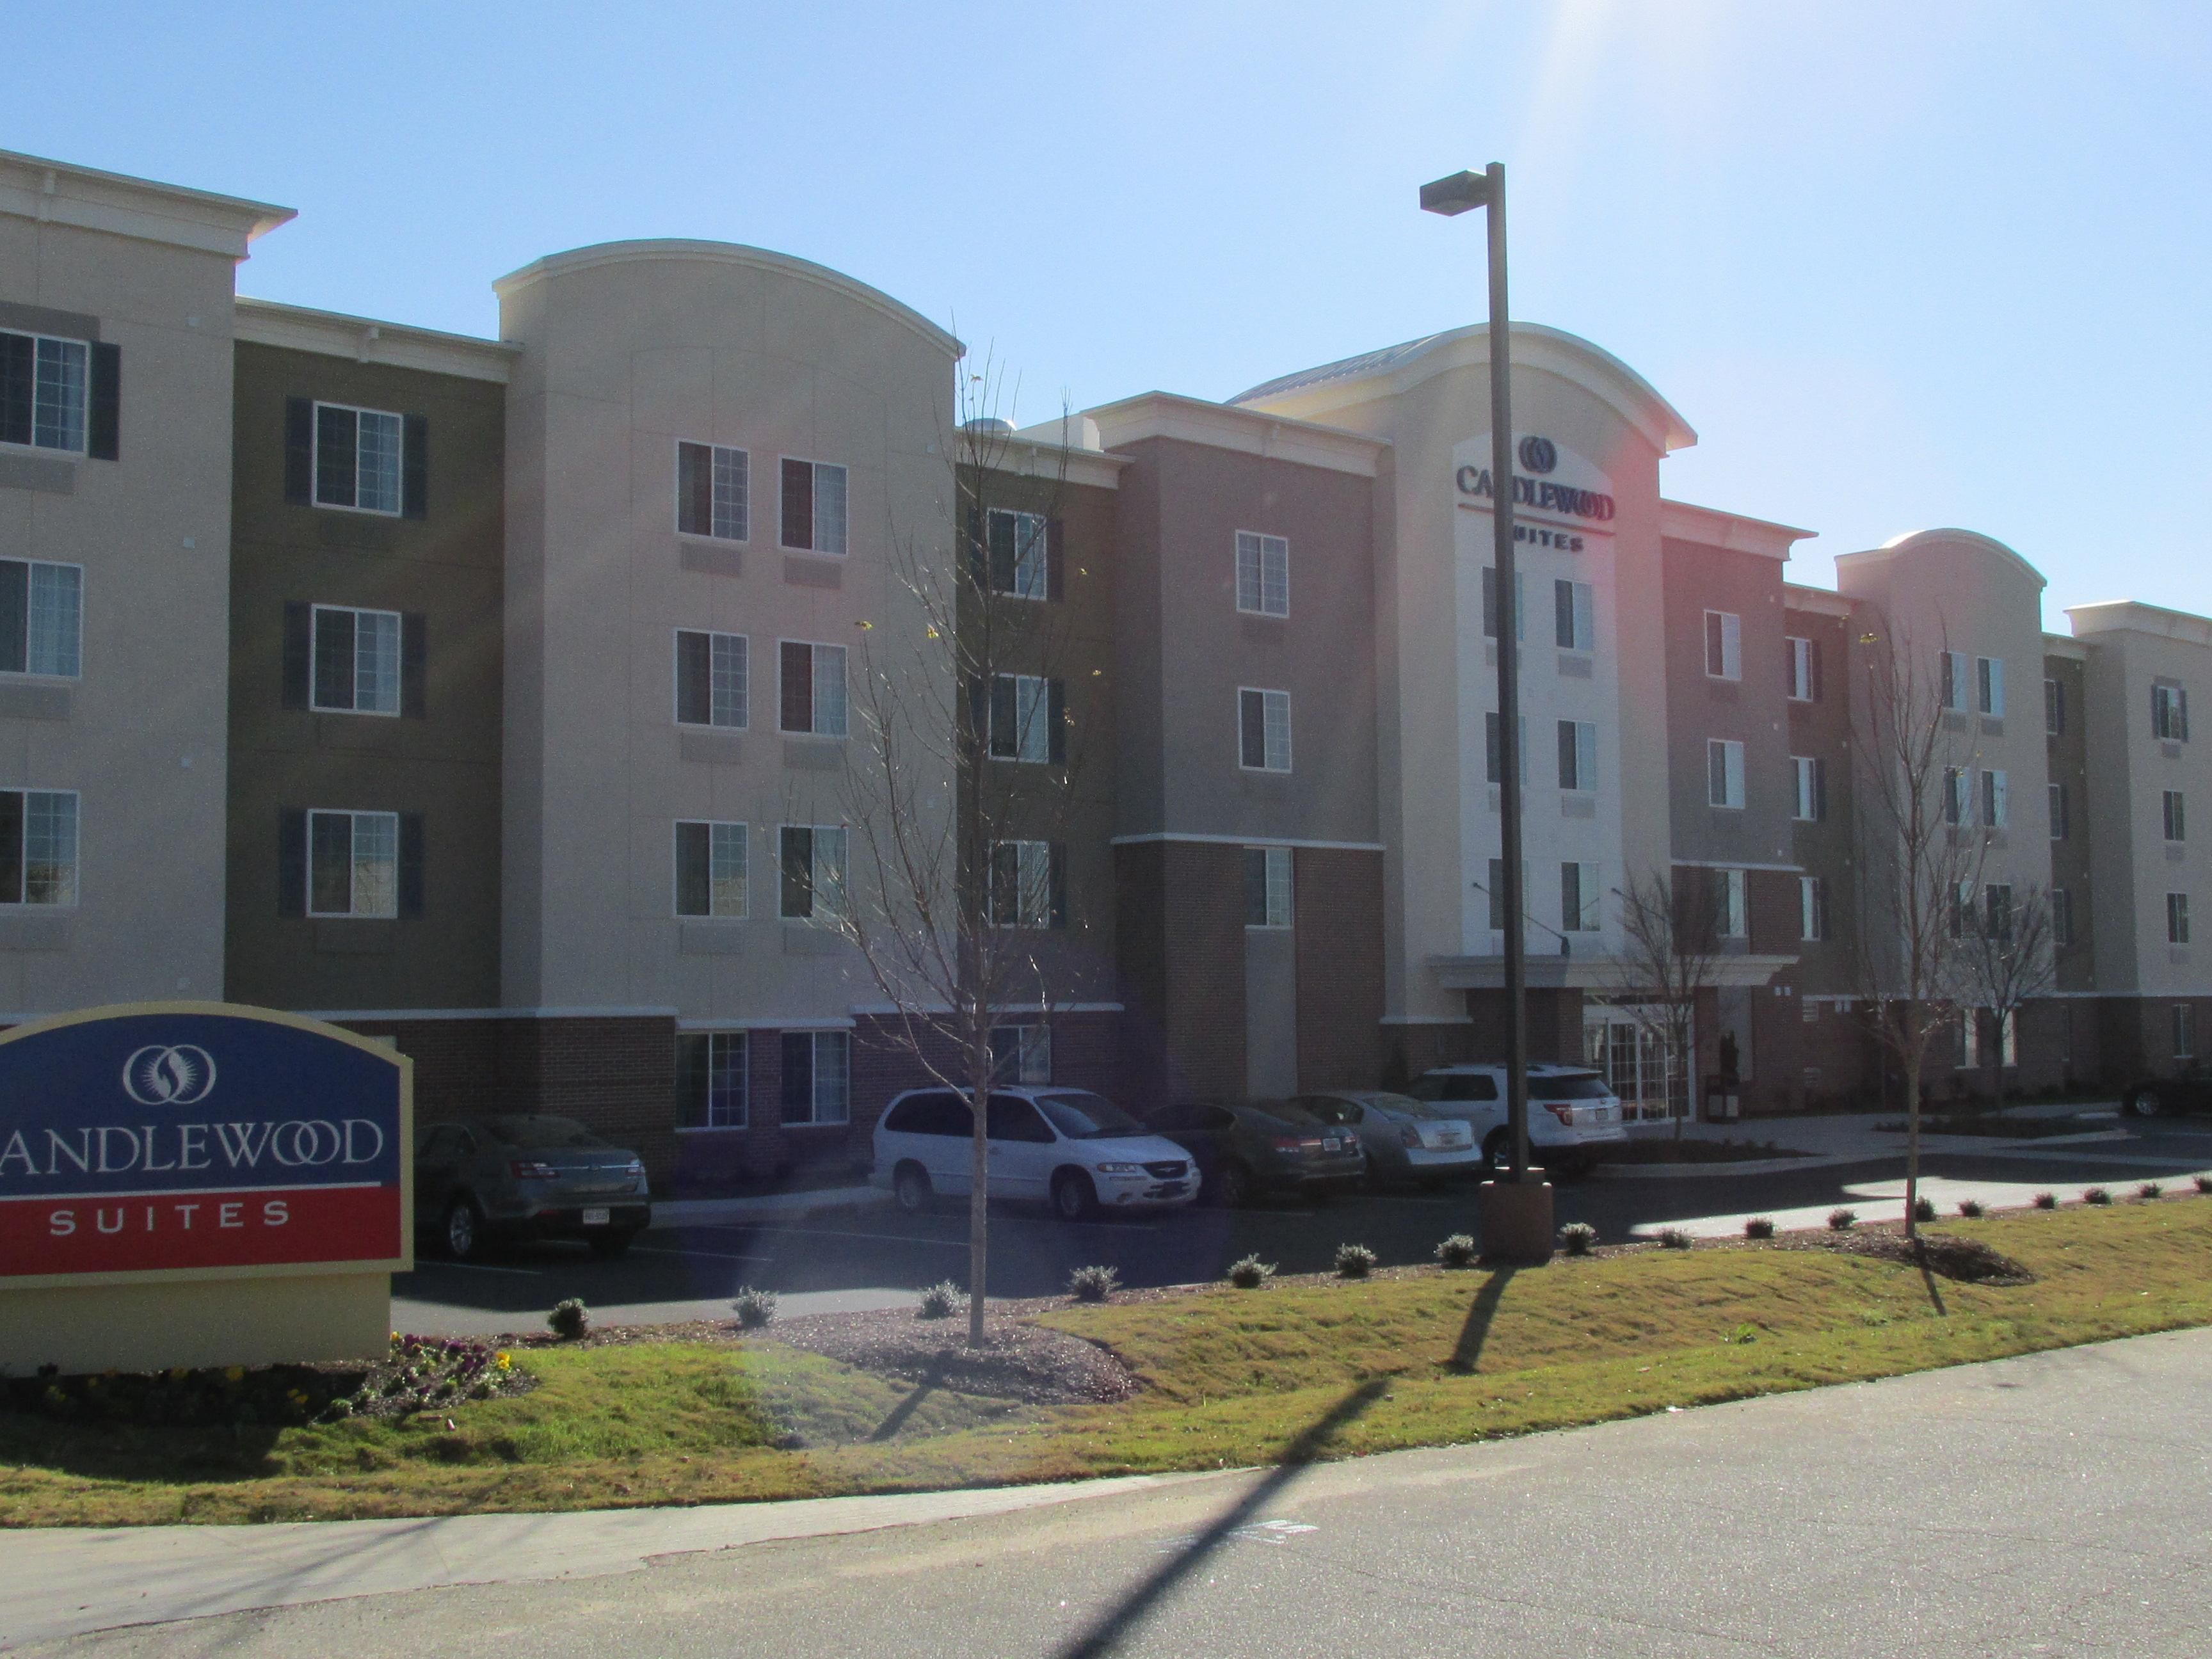 Greenville Hotels Candlewood Suites Greenville Extended Stay